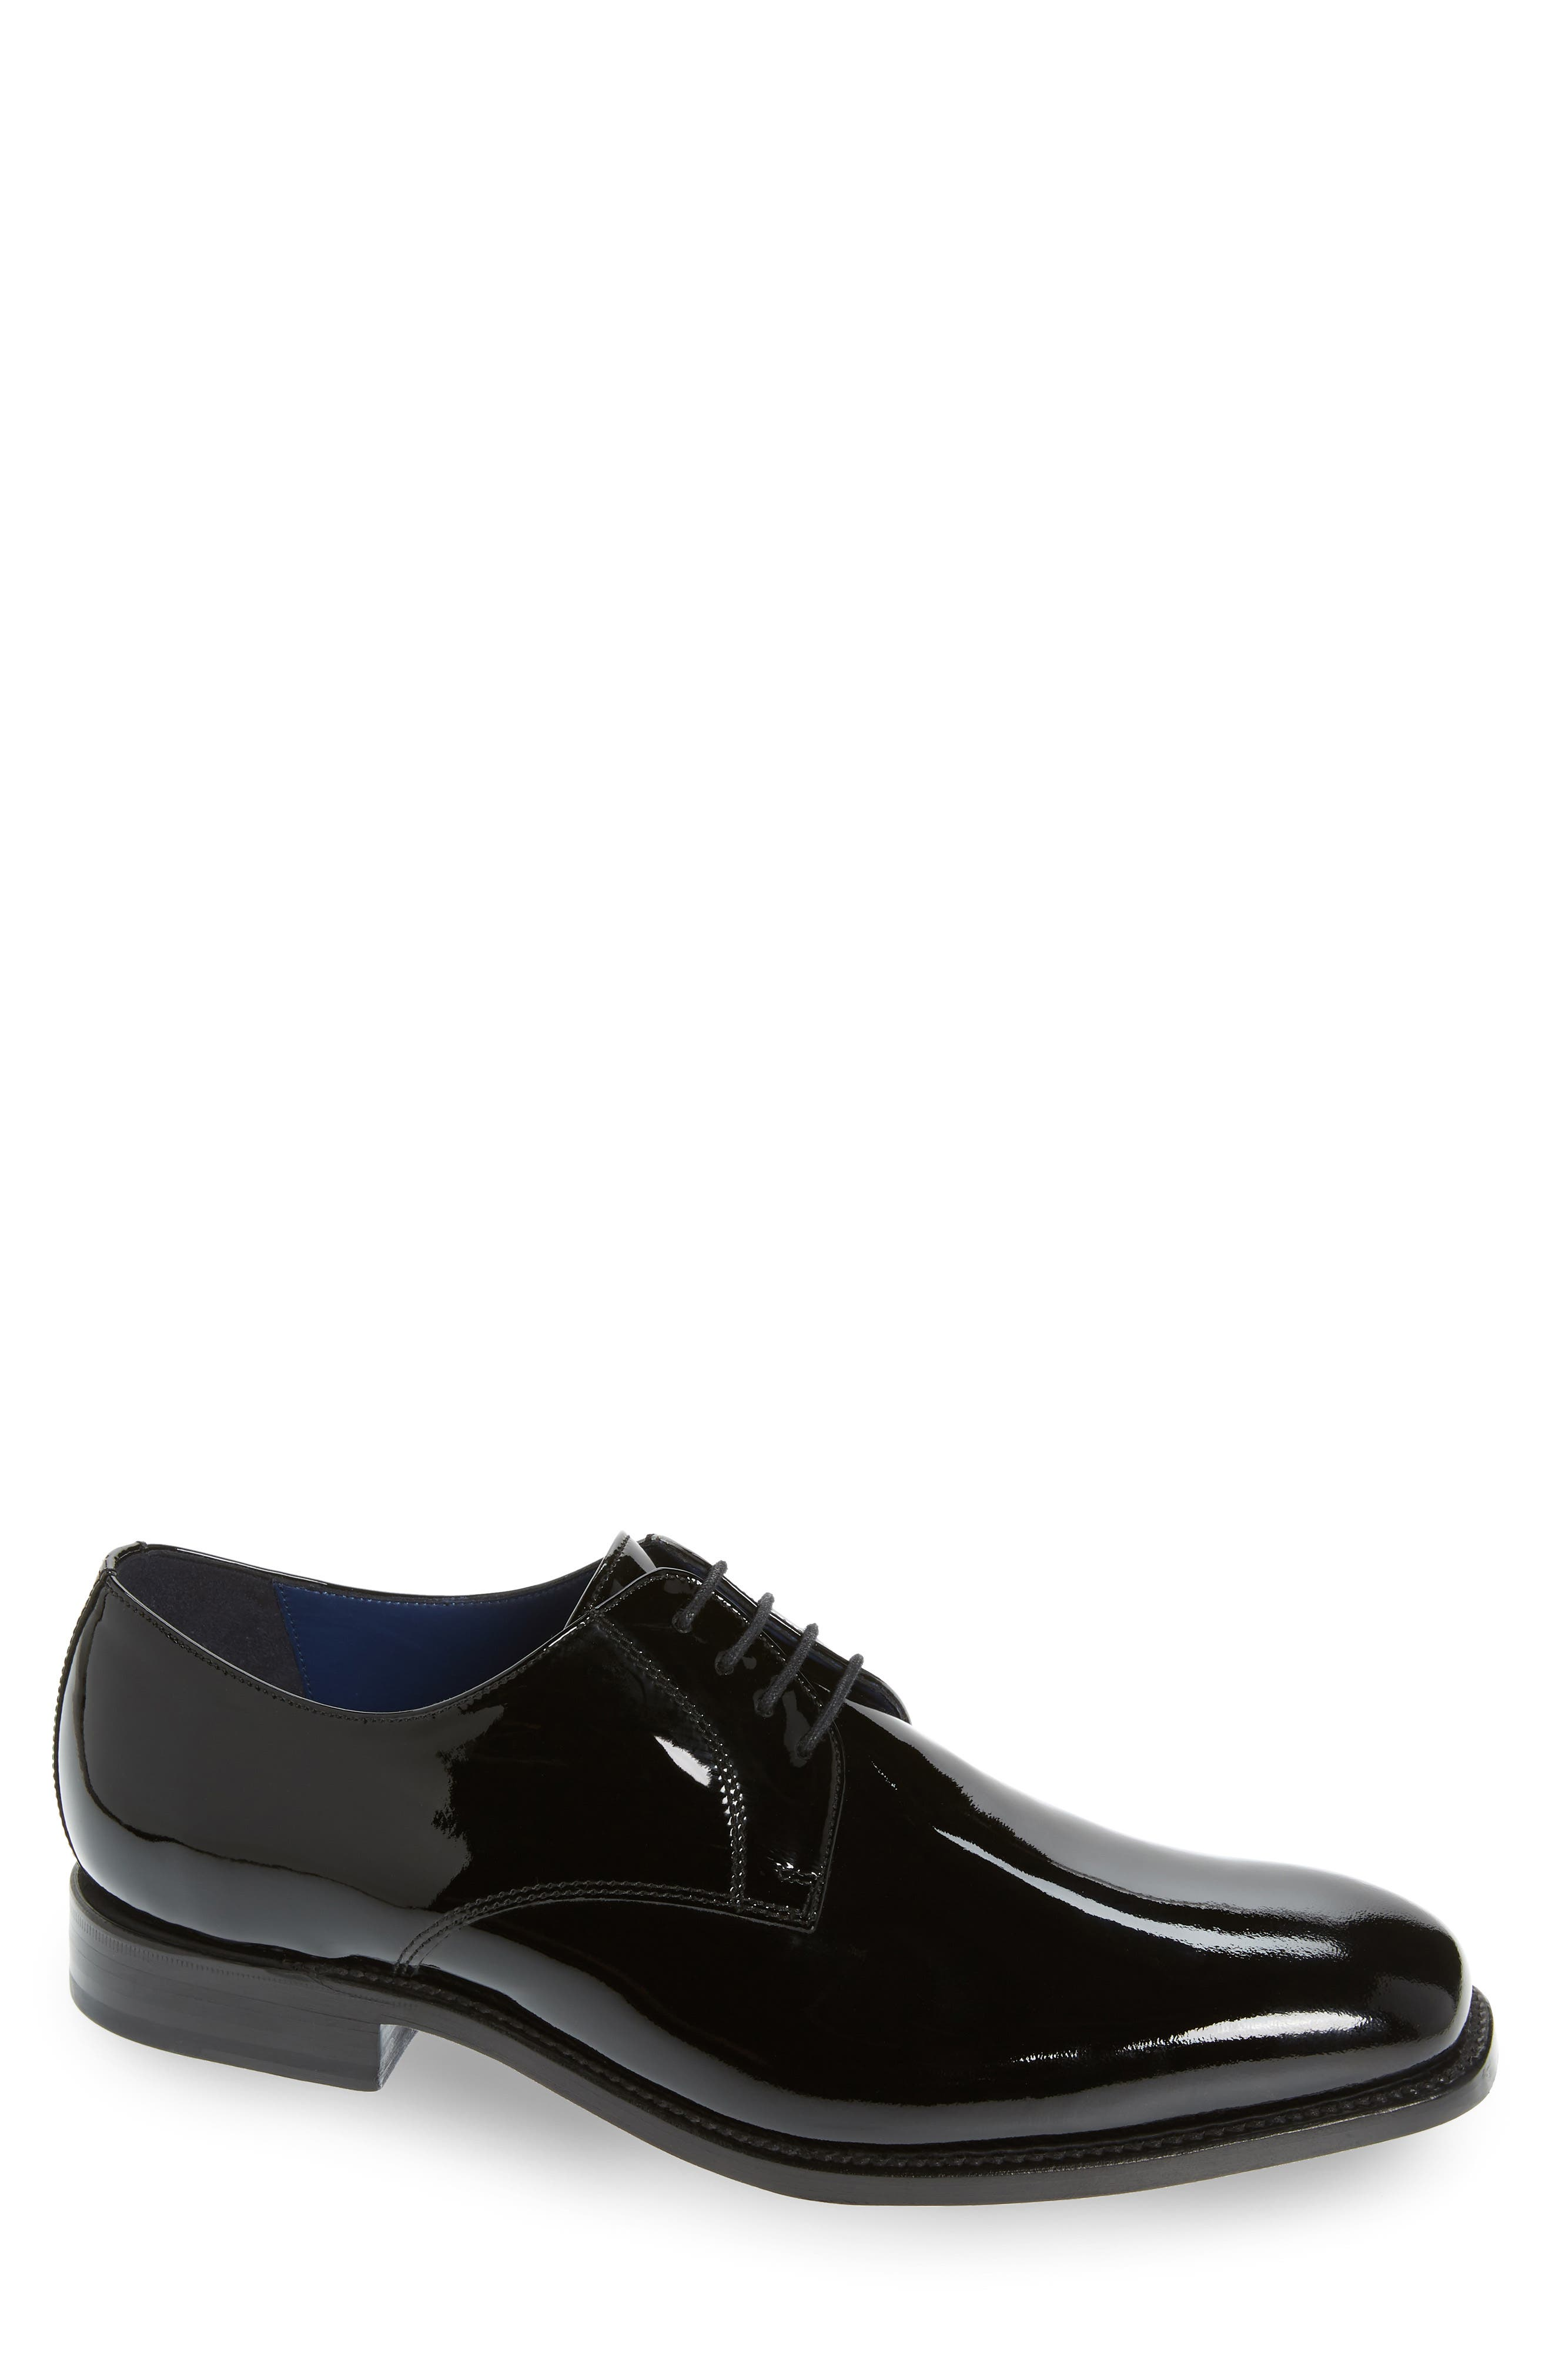 Alameda Plain Toe Derby,                             Main thumbnail 1, color,                             BLACK PATENT LEATHER